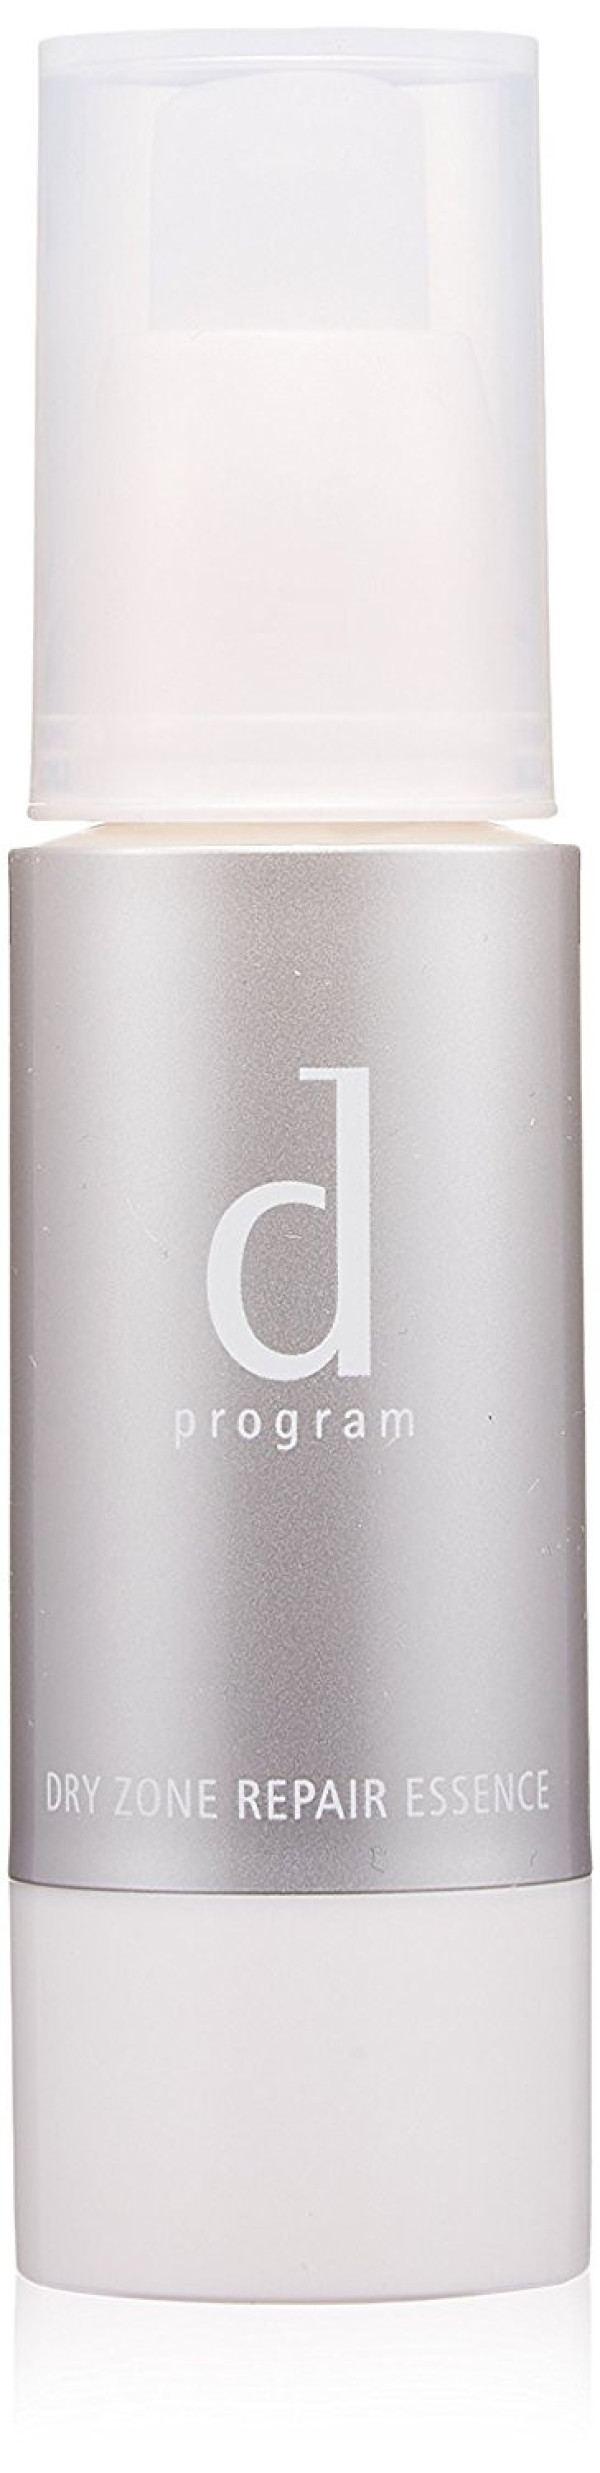 Увлажняющая эссенция Shiseido D Program Dry Zone Repair Essence